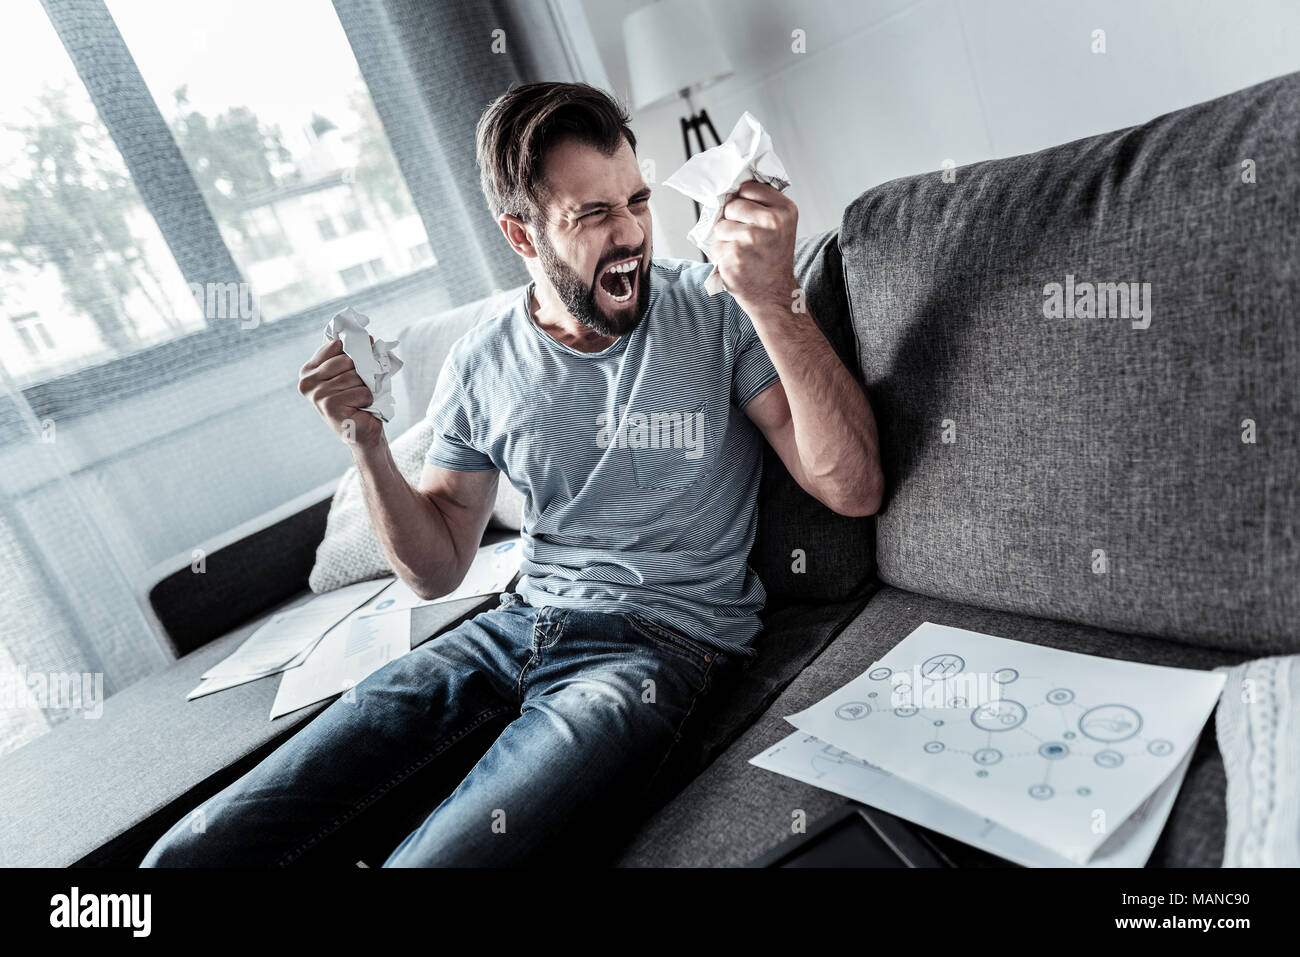 Angry emotional man crumpling paper - Stock Image